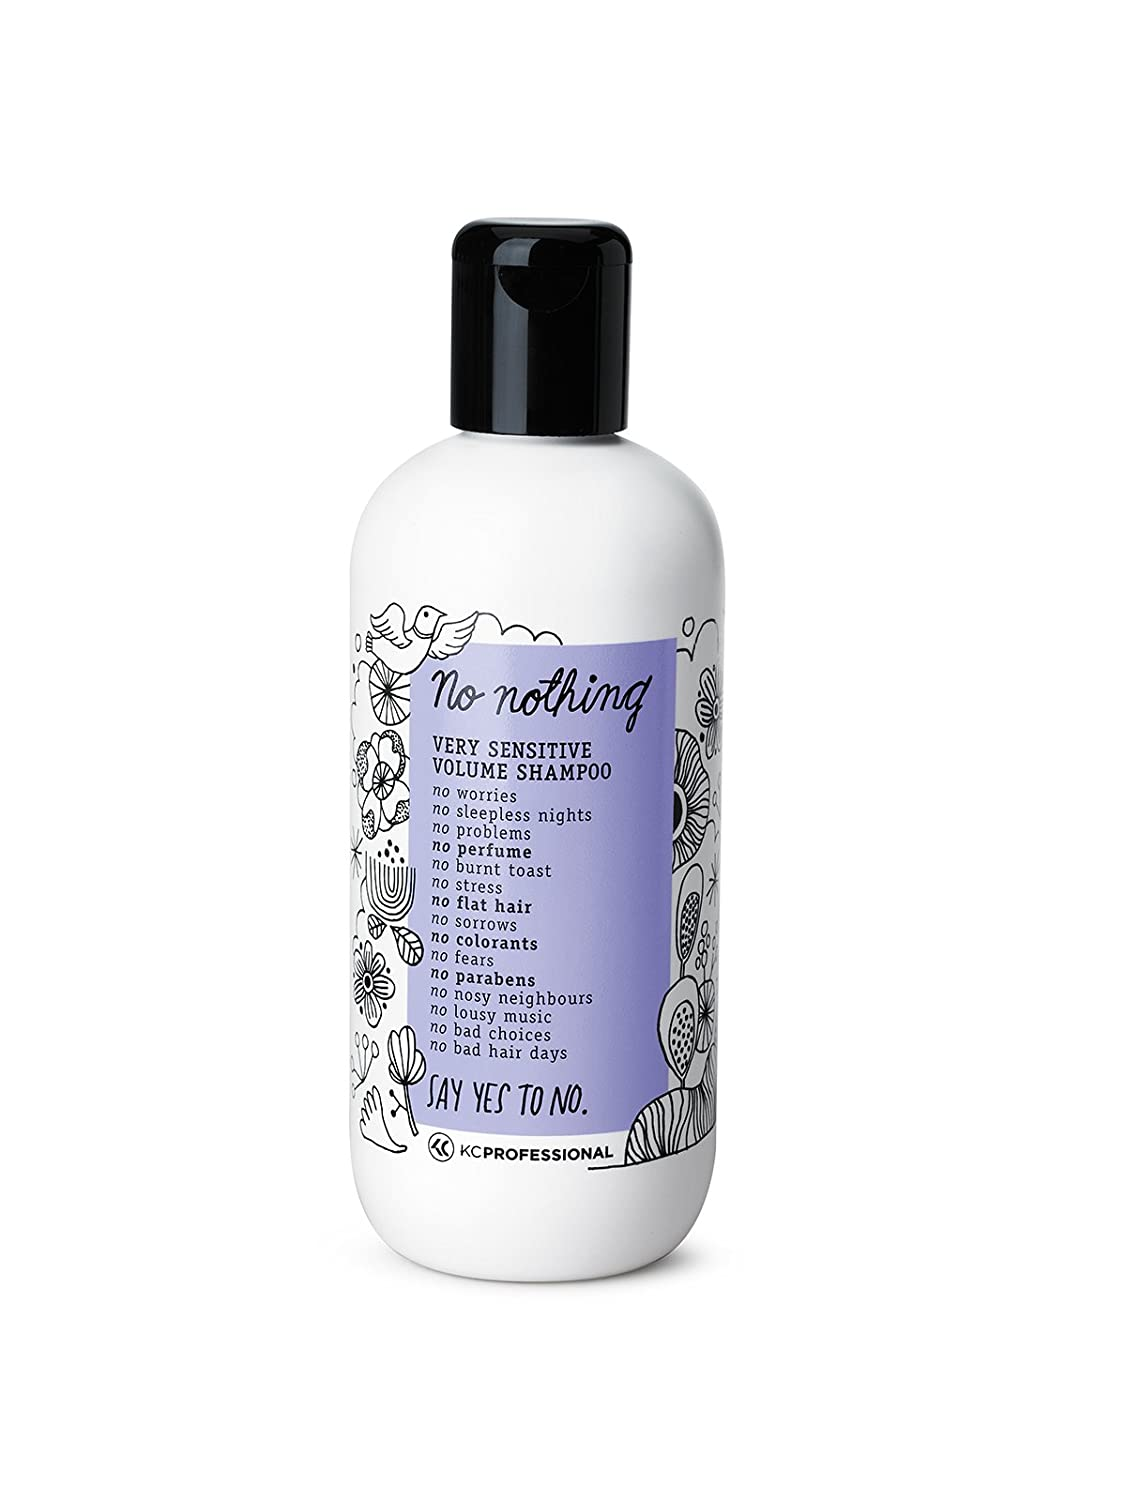 100% Vegan Volume Shampoo - Very Sensitive Hypoallergenic Shampoo Cleanses and Gives Volume to Thin Hair - Allergen Free, Fragrance Free, Paraben Free, Gluten Free, Unscented 10.15 oz